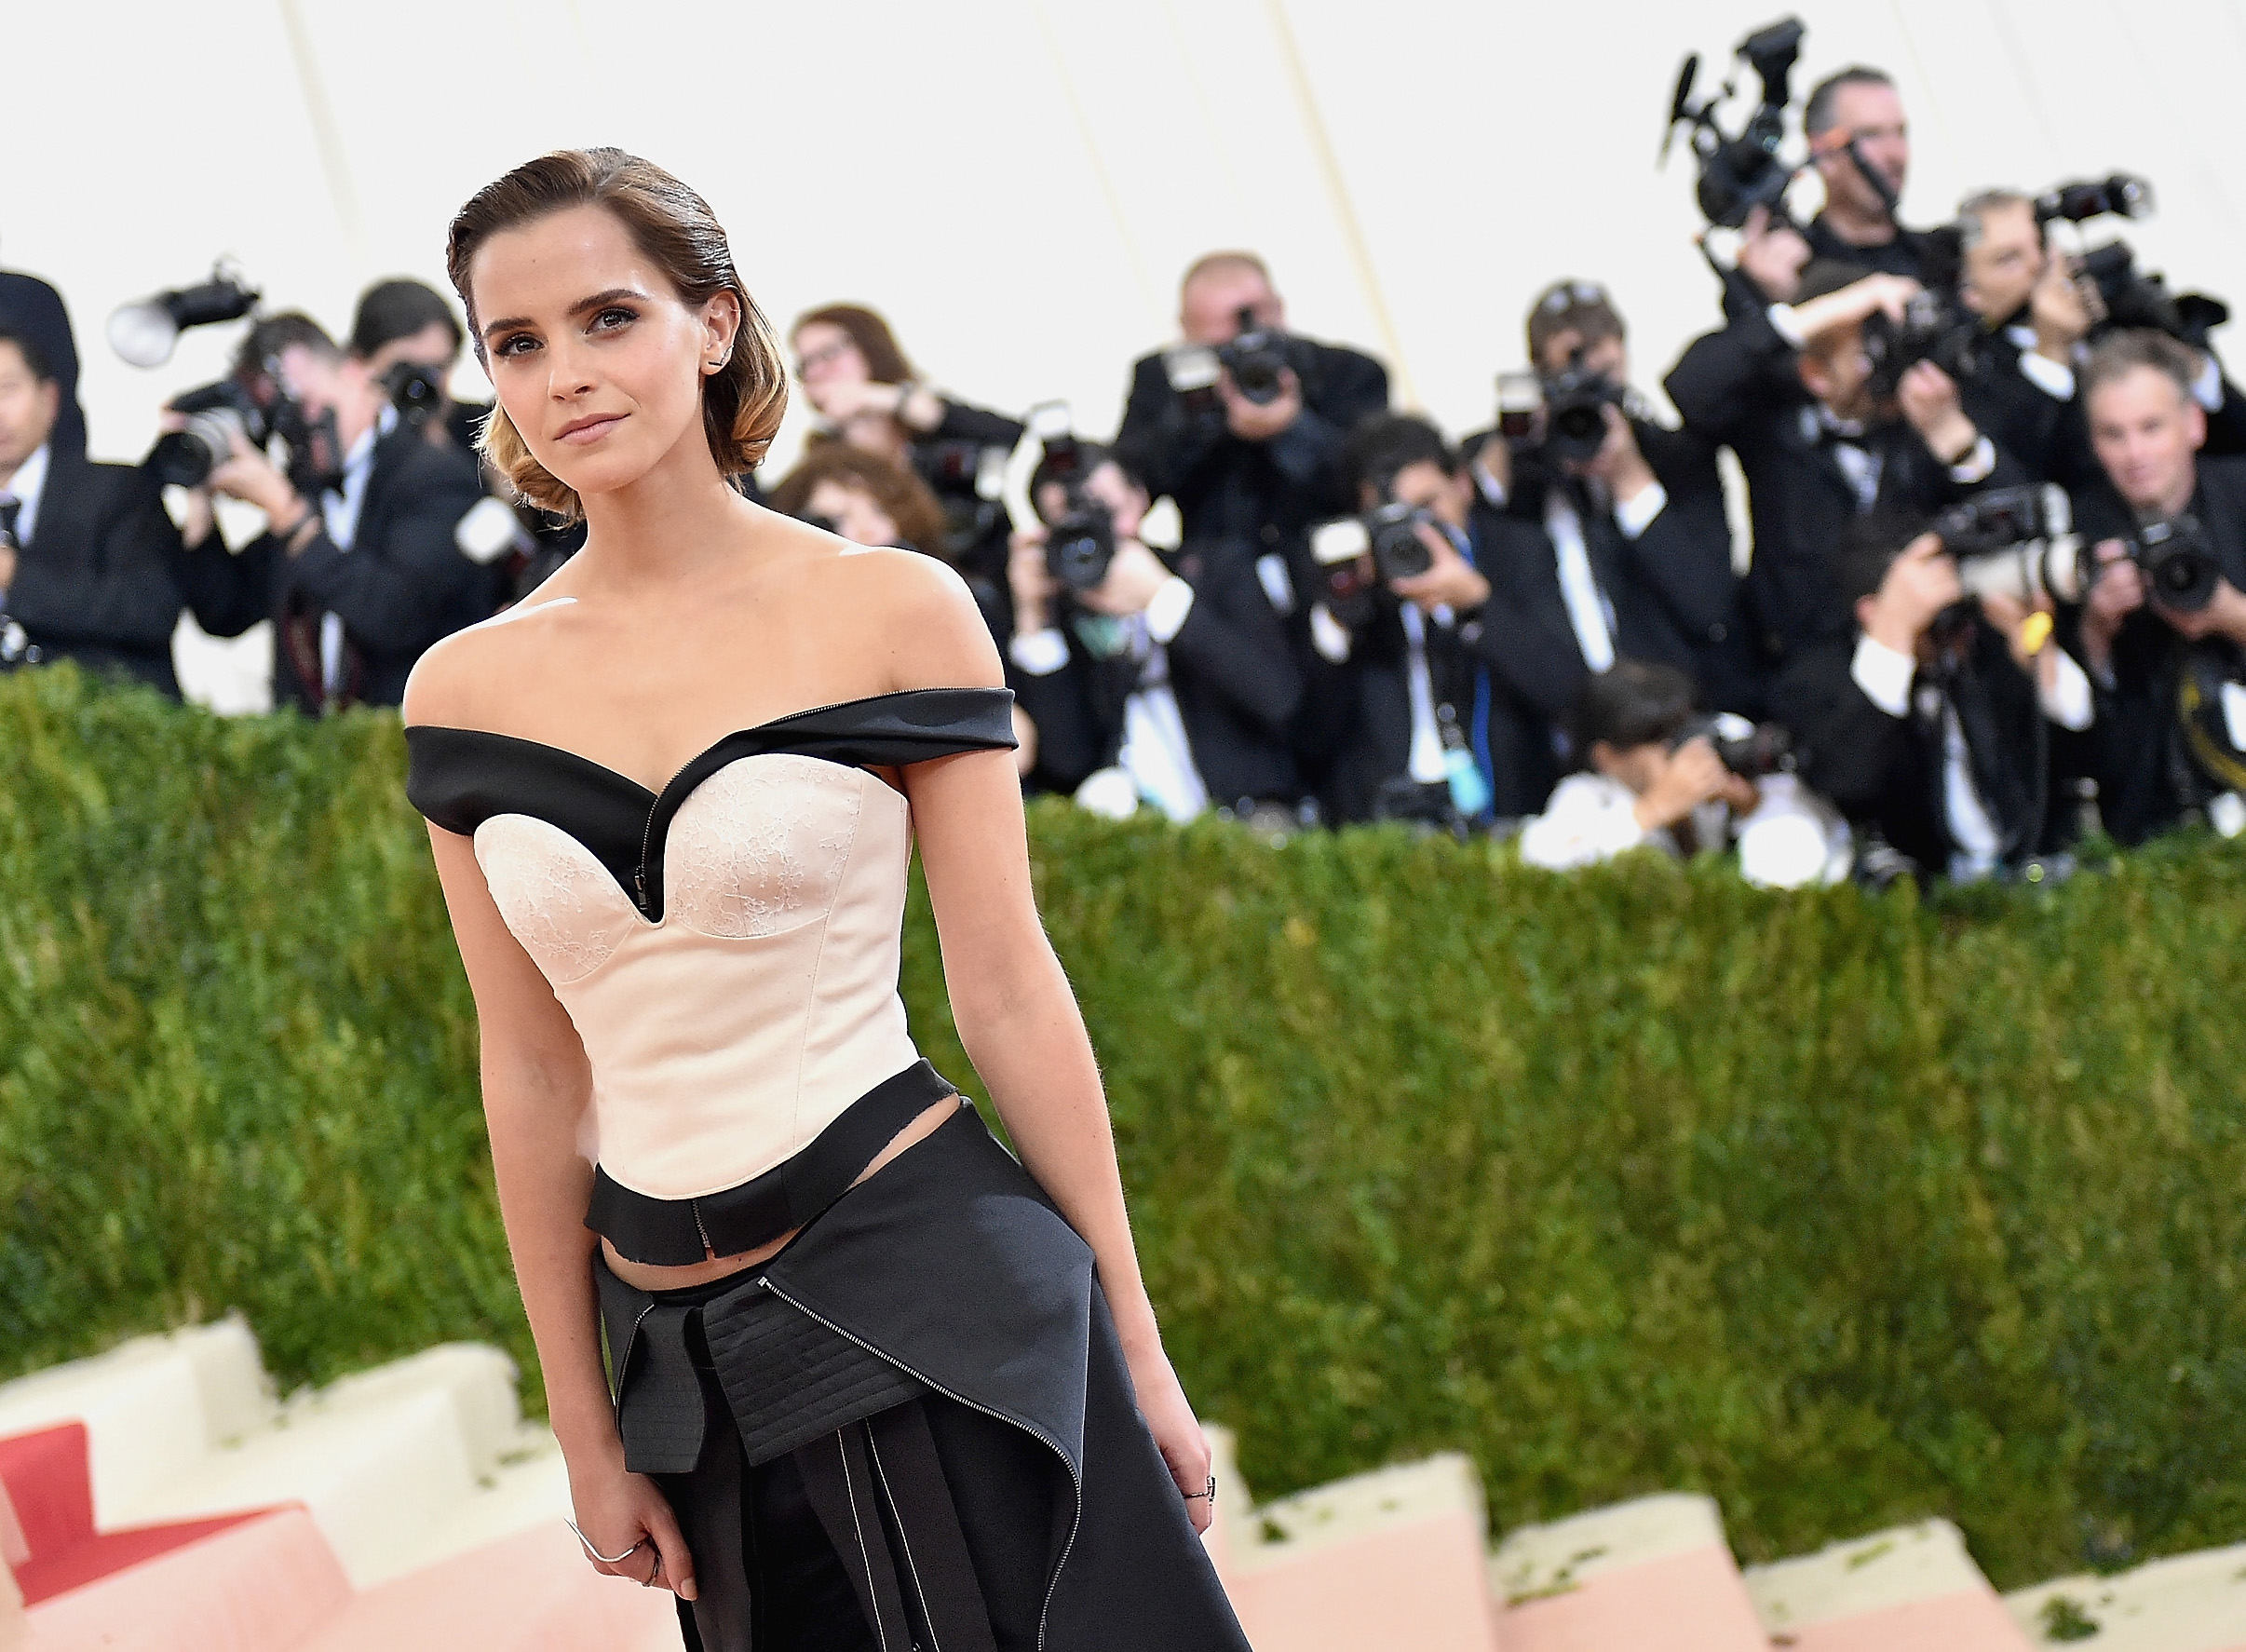 GettyImages 528406624 Emma Watson Breasts And Nipples Pics Surface Online, Lawyers Not Happy